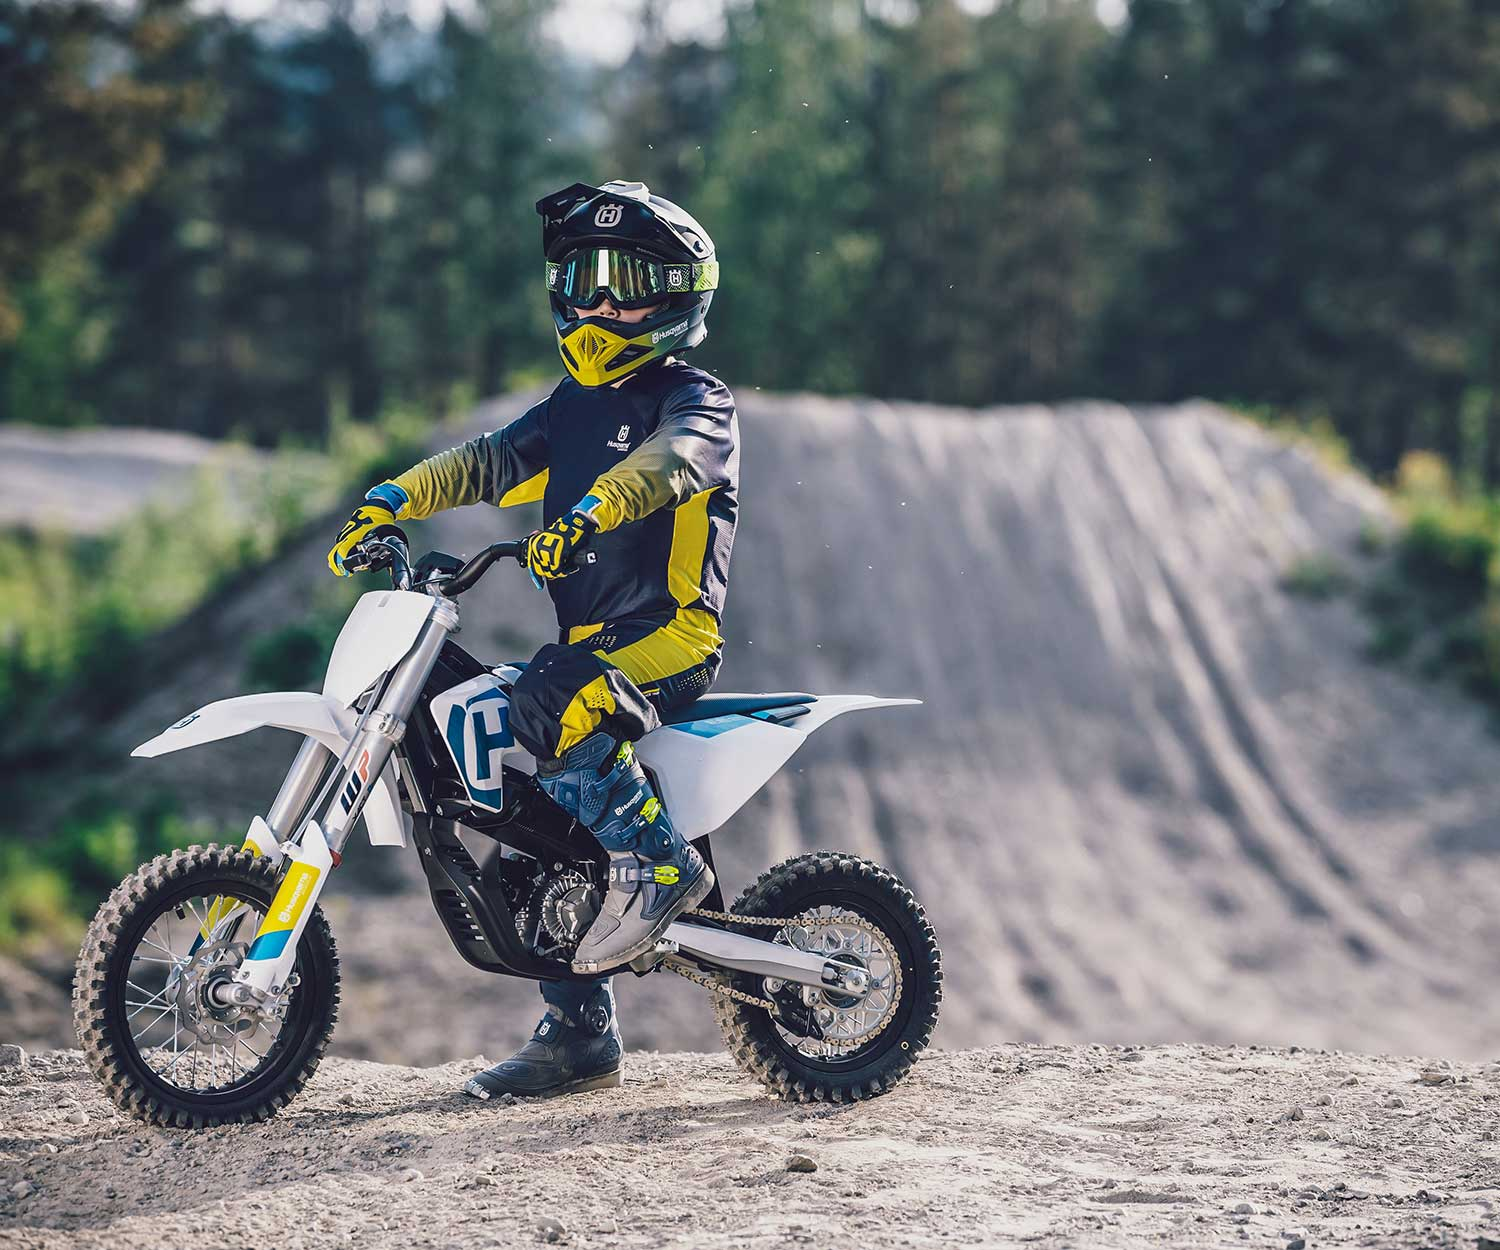 2020 Husqvarna EE 5 Electric Motorcycle First Look | Motorcyclist